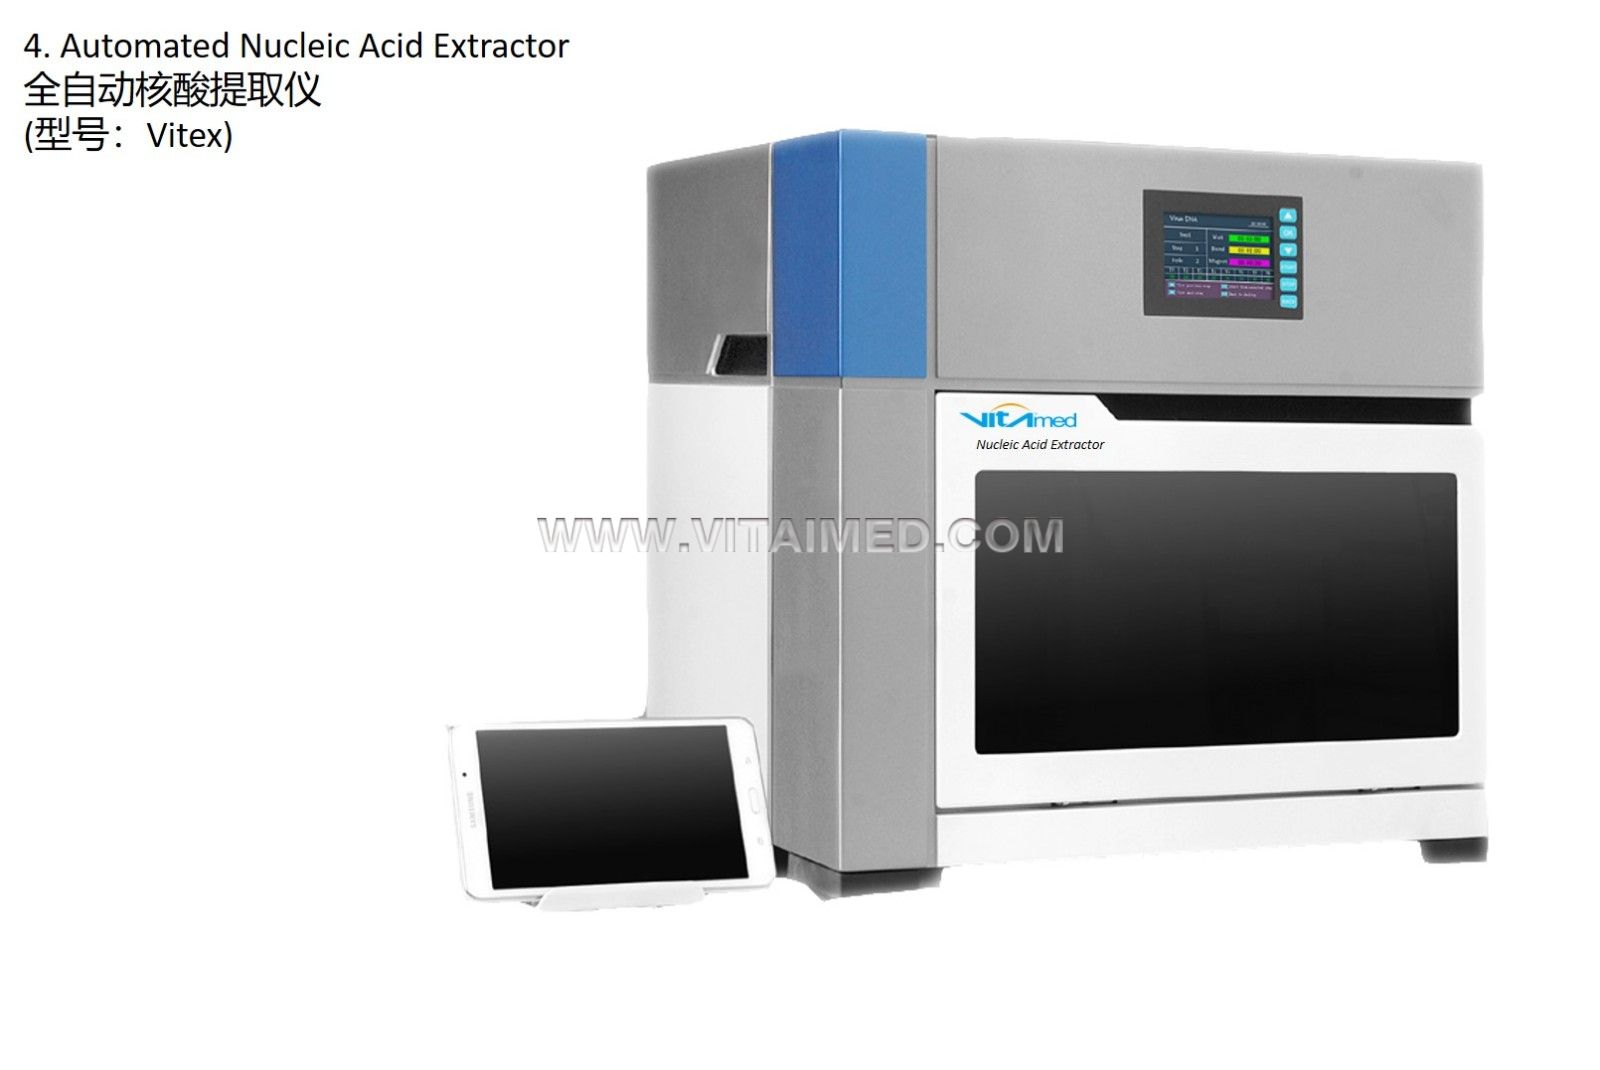 Automated Nucleic Acid Extractor-Vitex